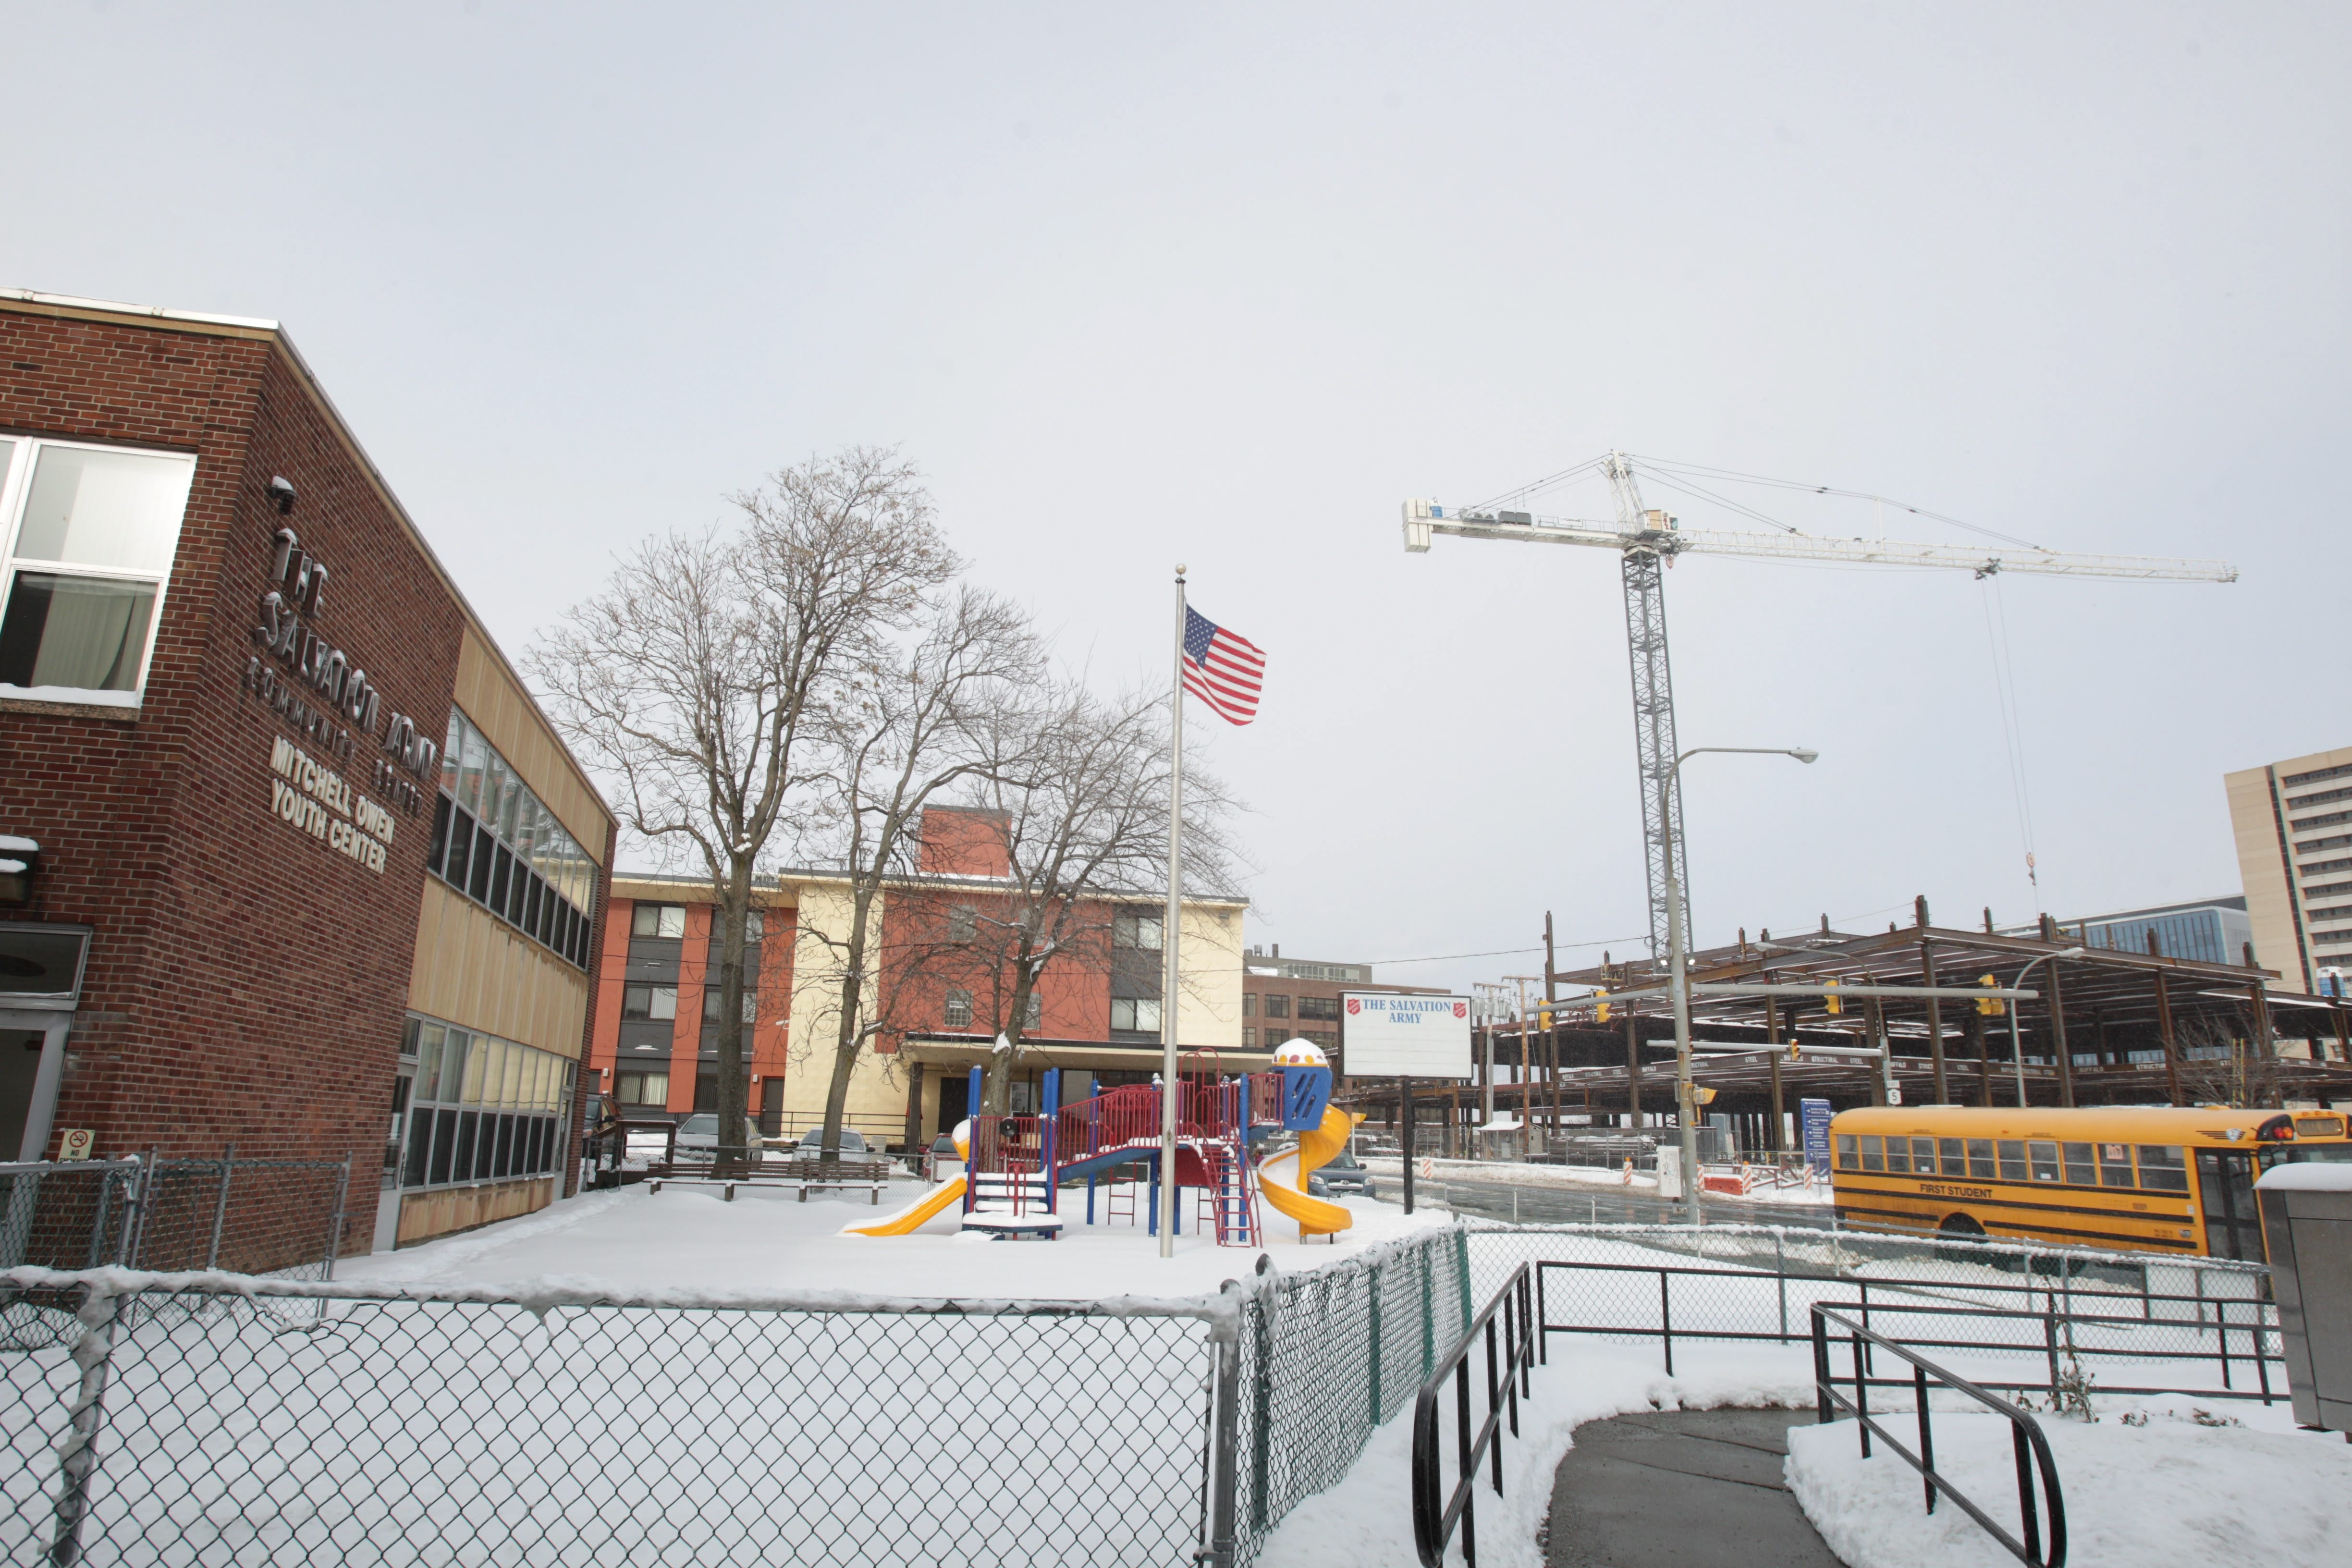 The Salvation Army at 960 Main St. is being sought by Ciminelli Real Estate Corp. for redevelopment related to the Buffalo Niagara Medical Campus. The building is across the street from medical campus construction.